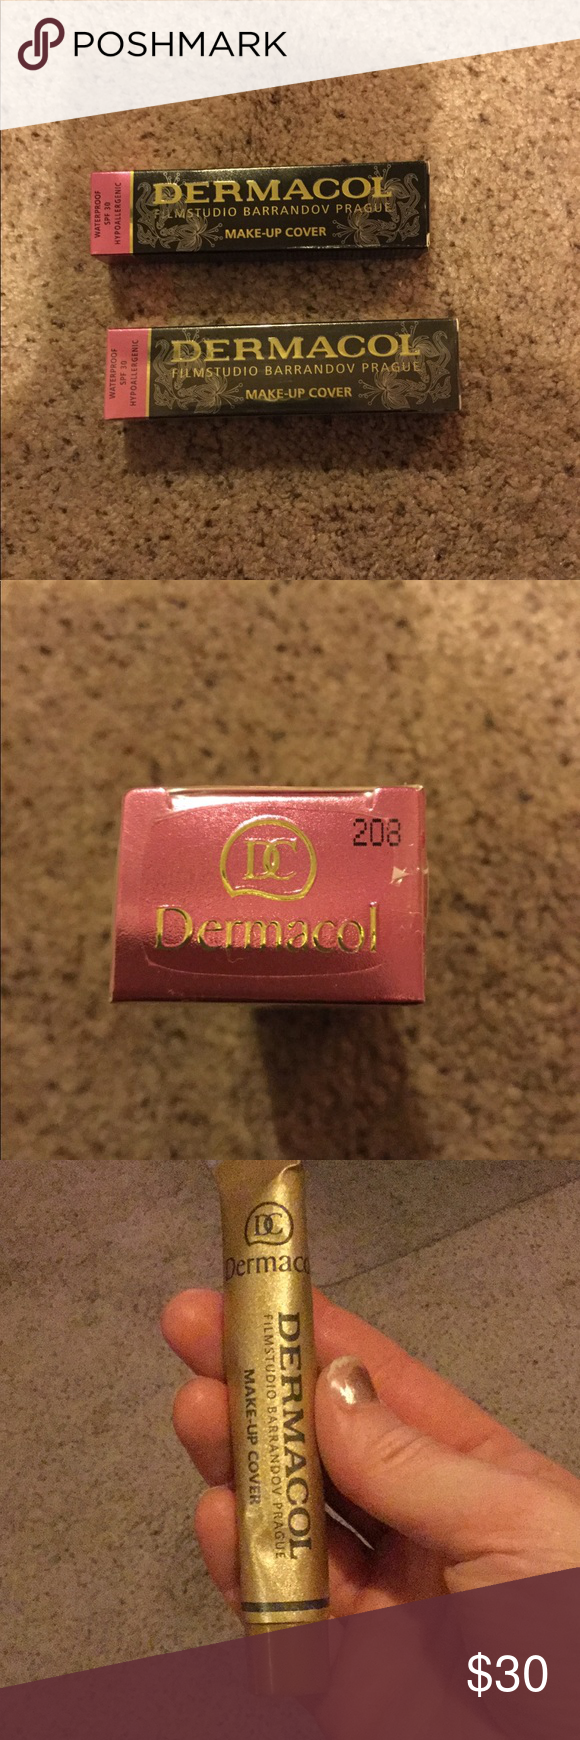 DERMACOL Makeup Cover 207 NWT Dermacol make up cover